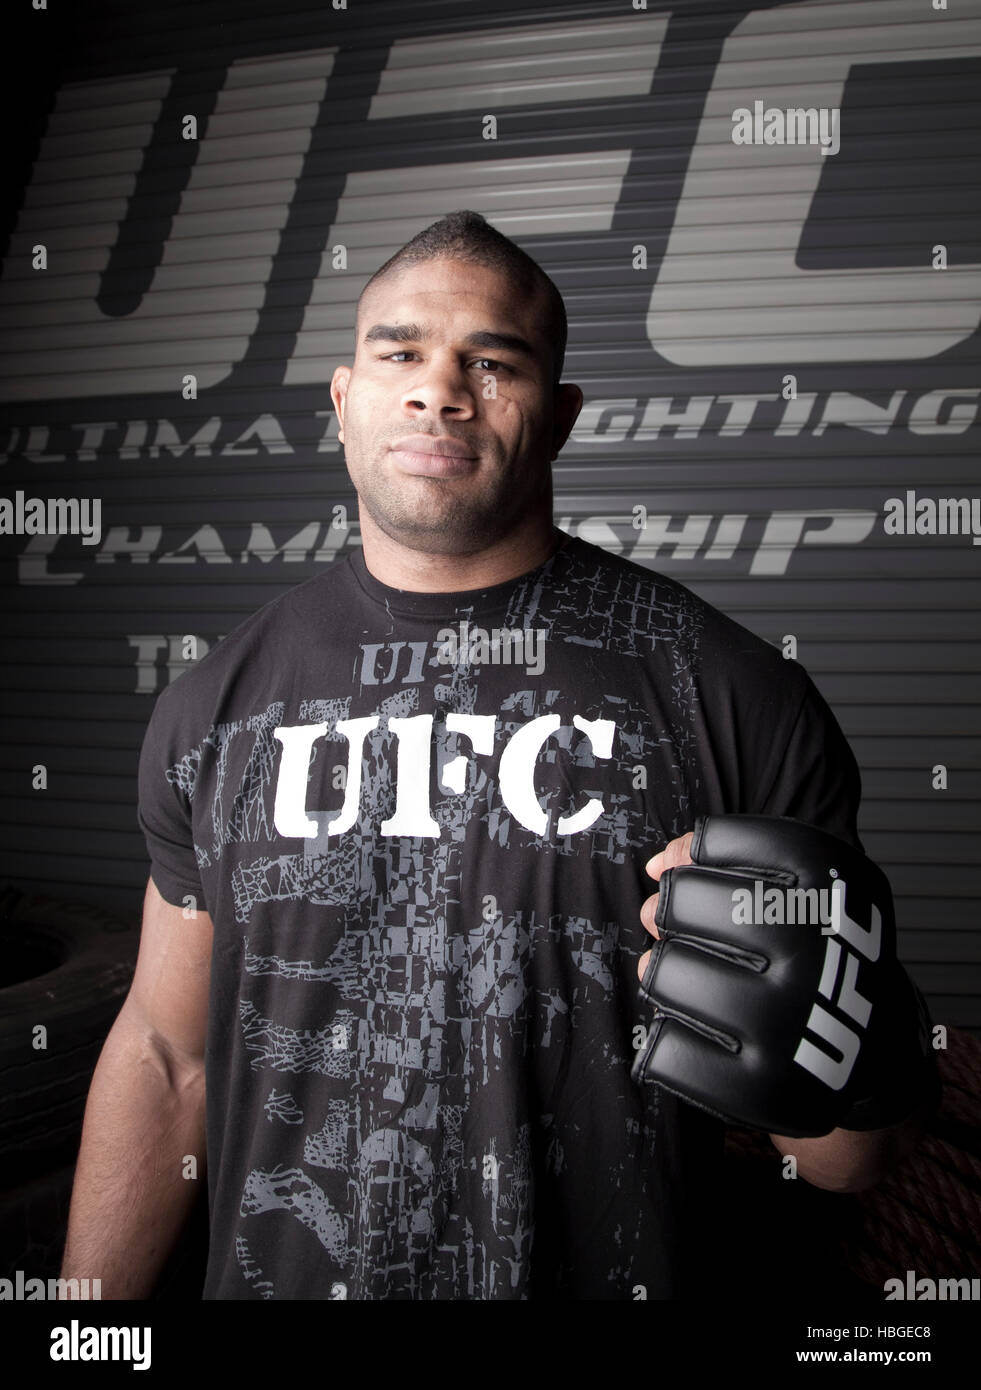 Ufc Fighter Alistair Overeem Poses For A Portrait Before Ufc